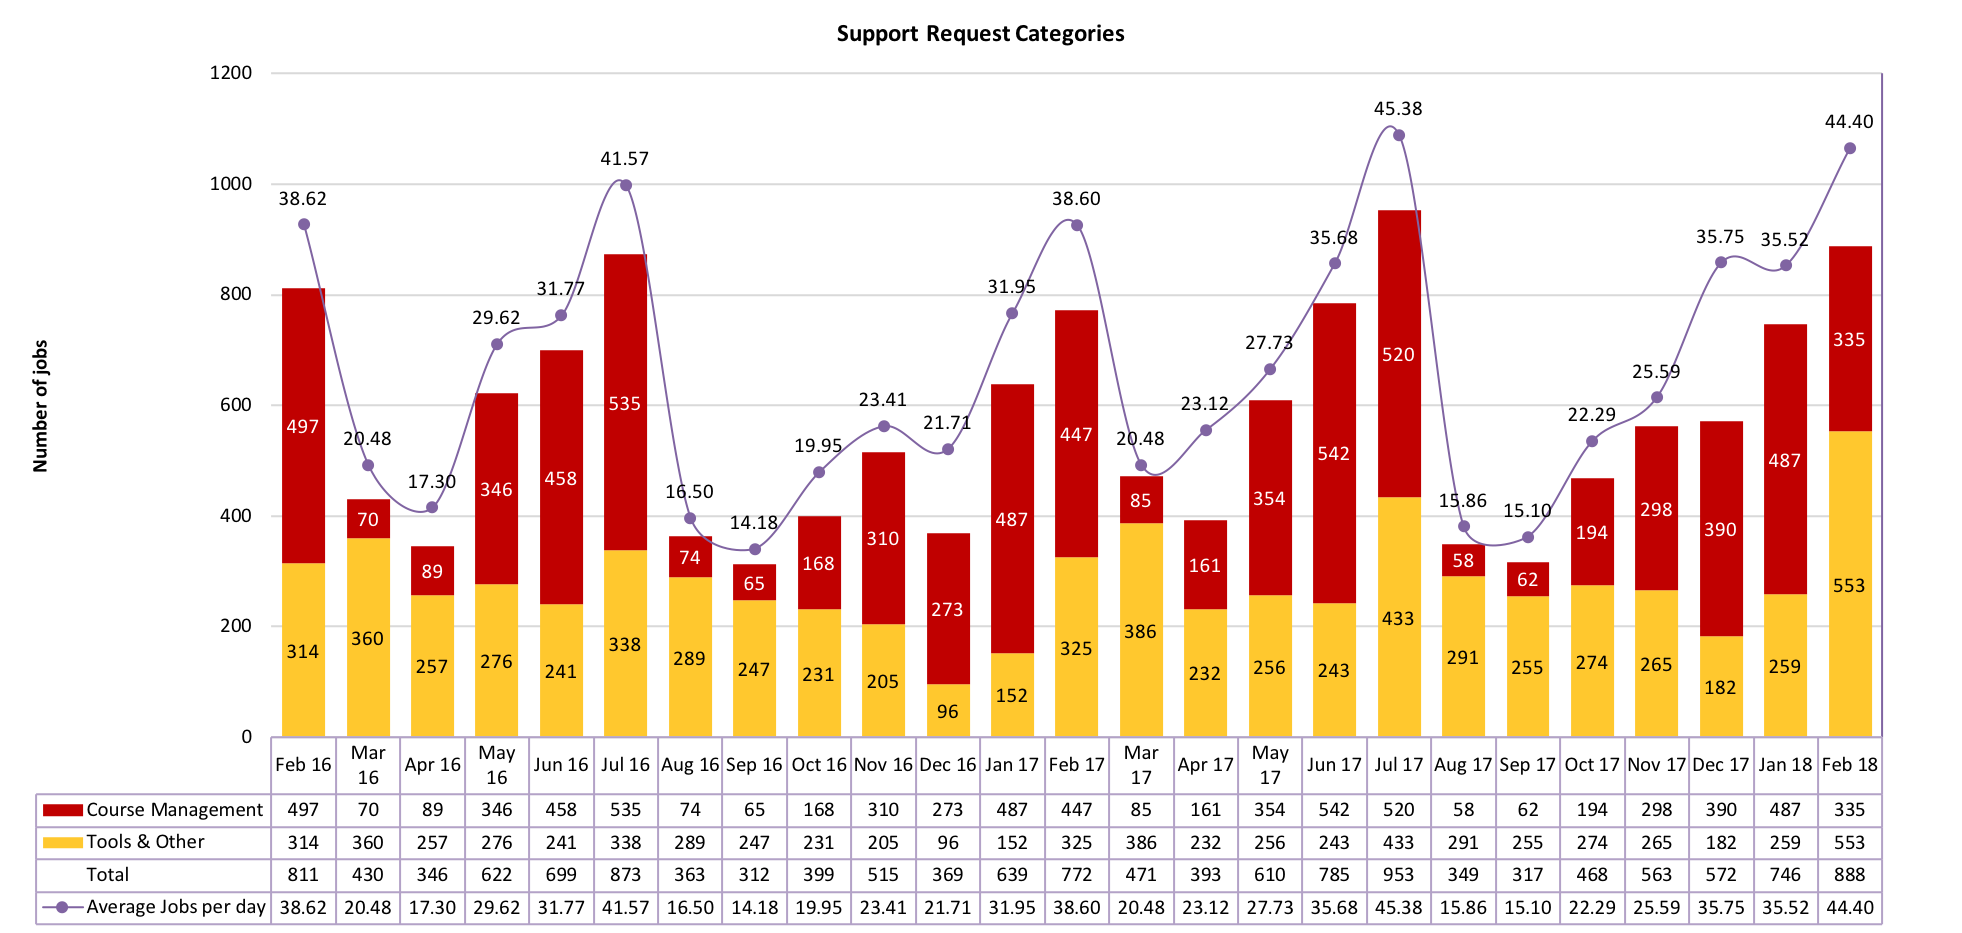 Chart of Support Request Categories from February 2016 to February 2018